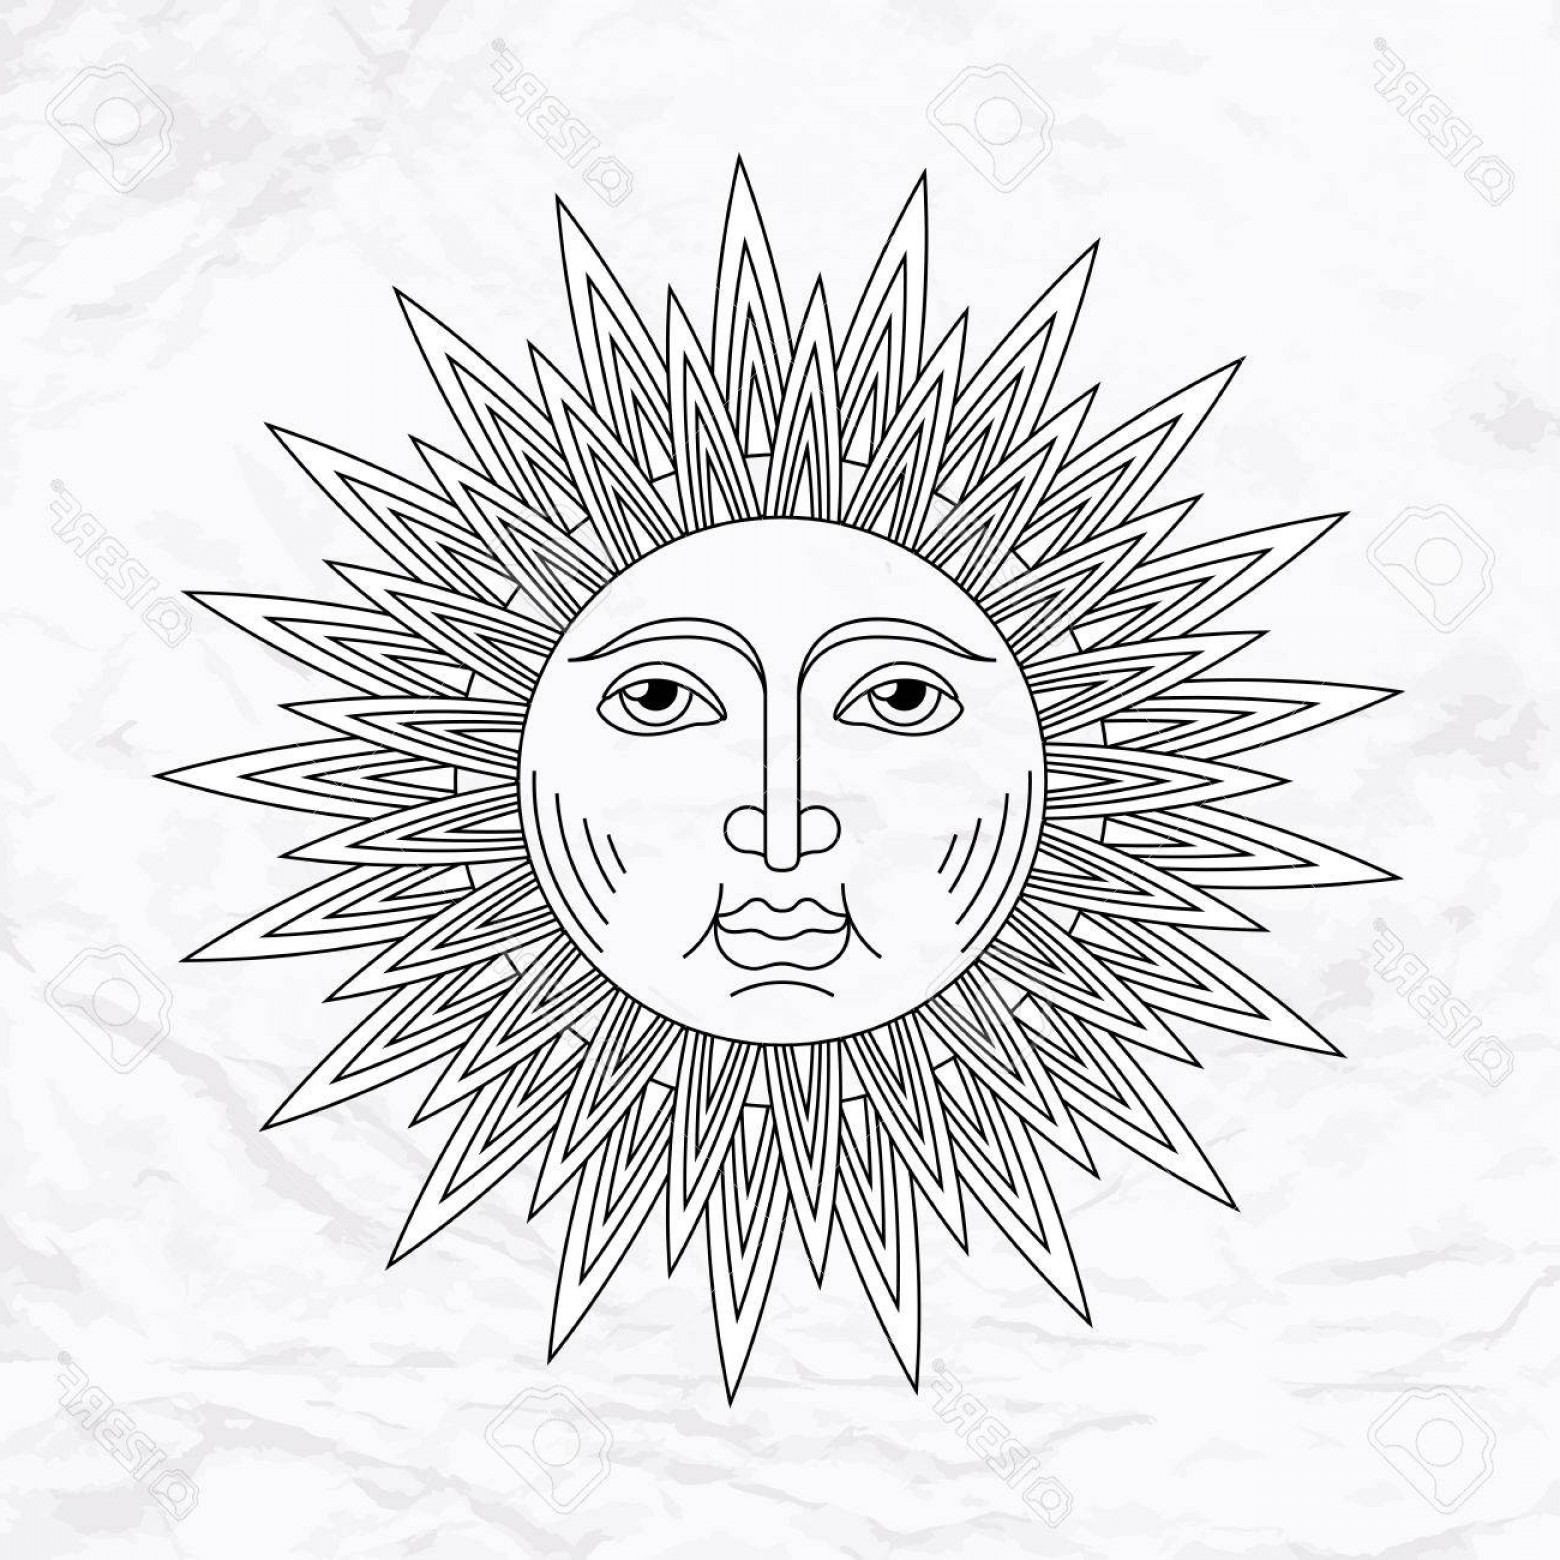 Geometric Sun Vector: Photostock Vector Vector Geometric Illustration Of Medieval Sun Alchemy Symbol With Eyes And Face Abstract Occult And